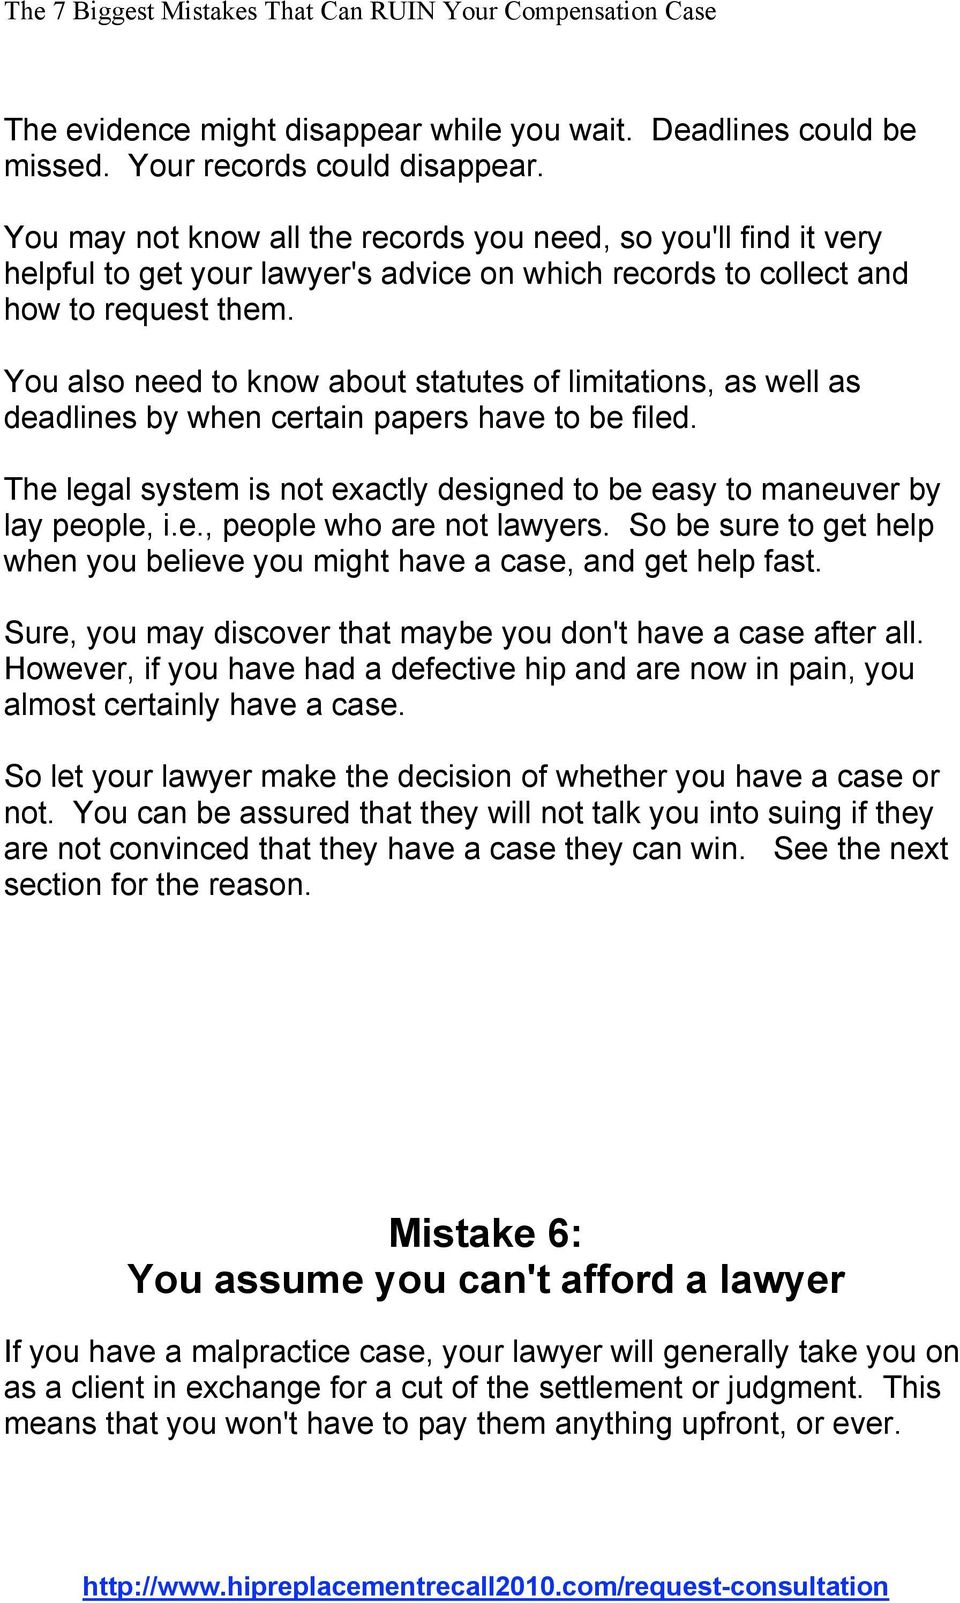 You also need to know about statutes of limitations, as well as deadlines by when certain papers have to be filed. The legal system is not exactly designed to be easy to maneuver by lay people, i.e., people who are not lawyers.